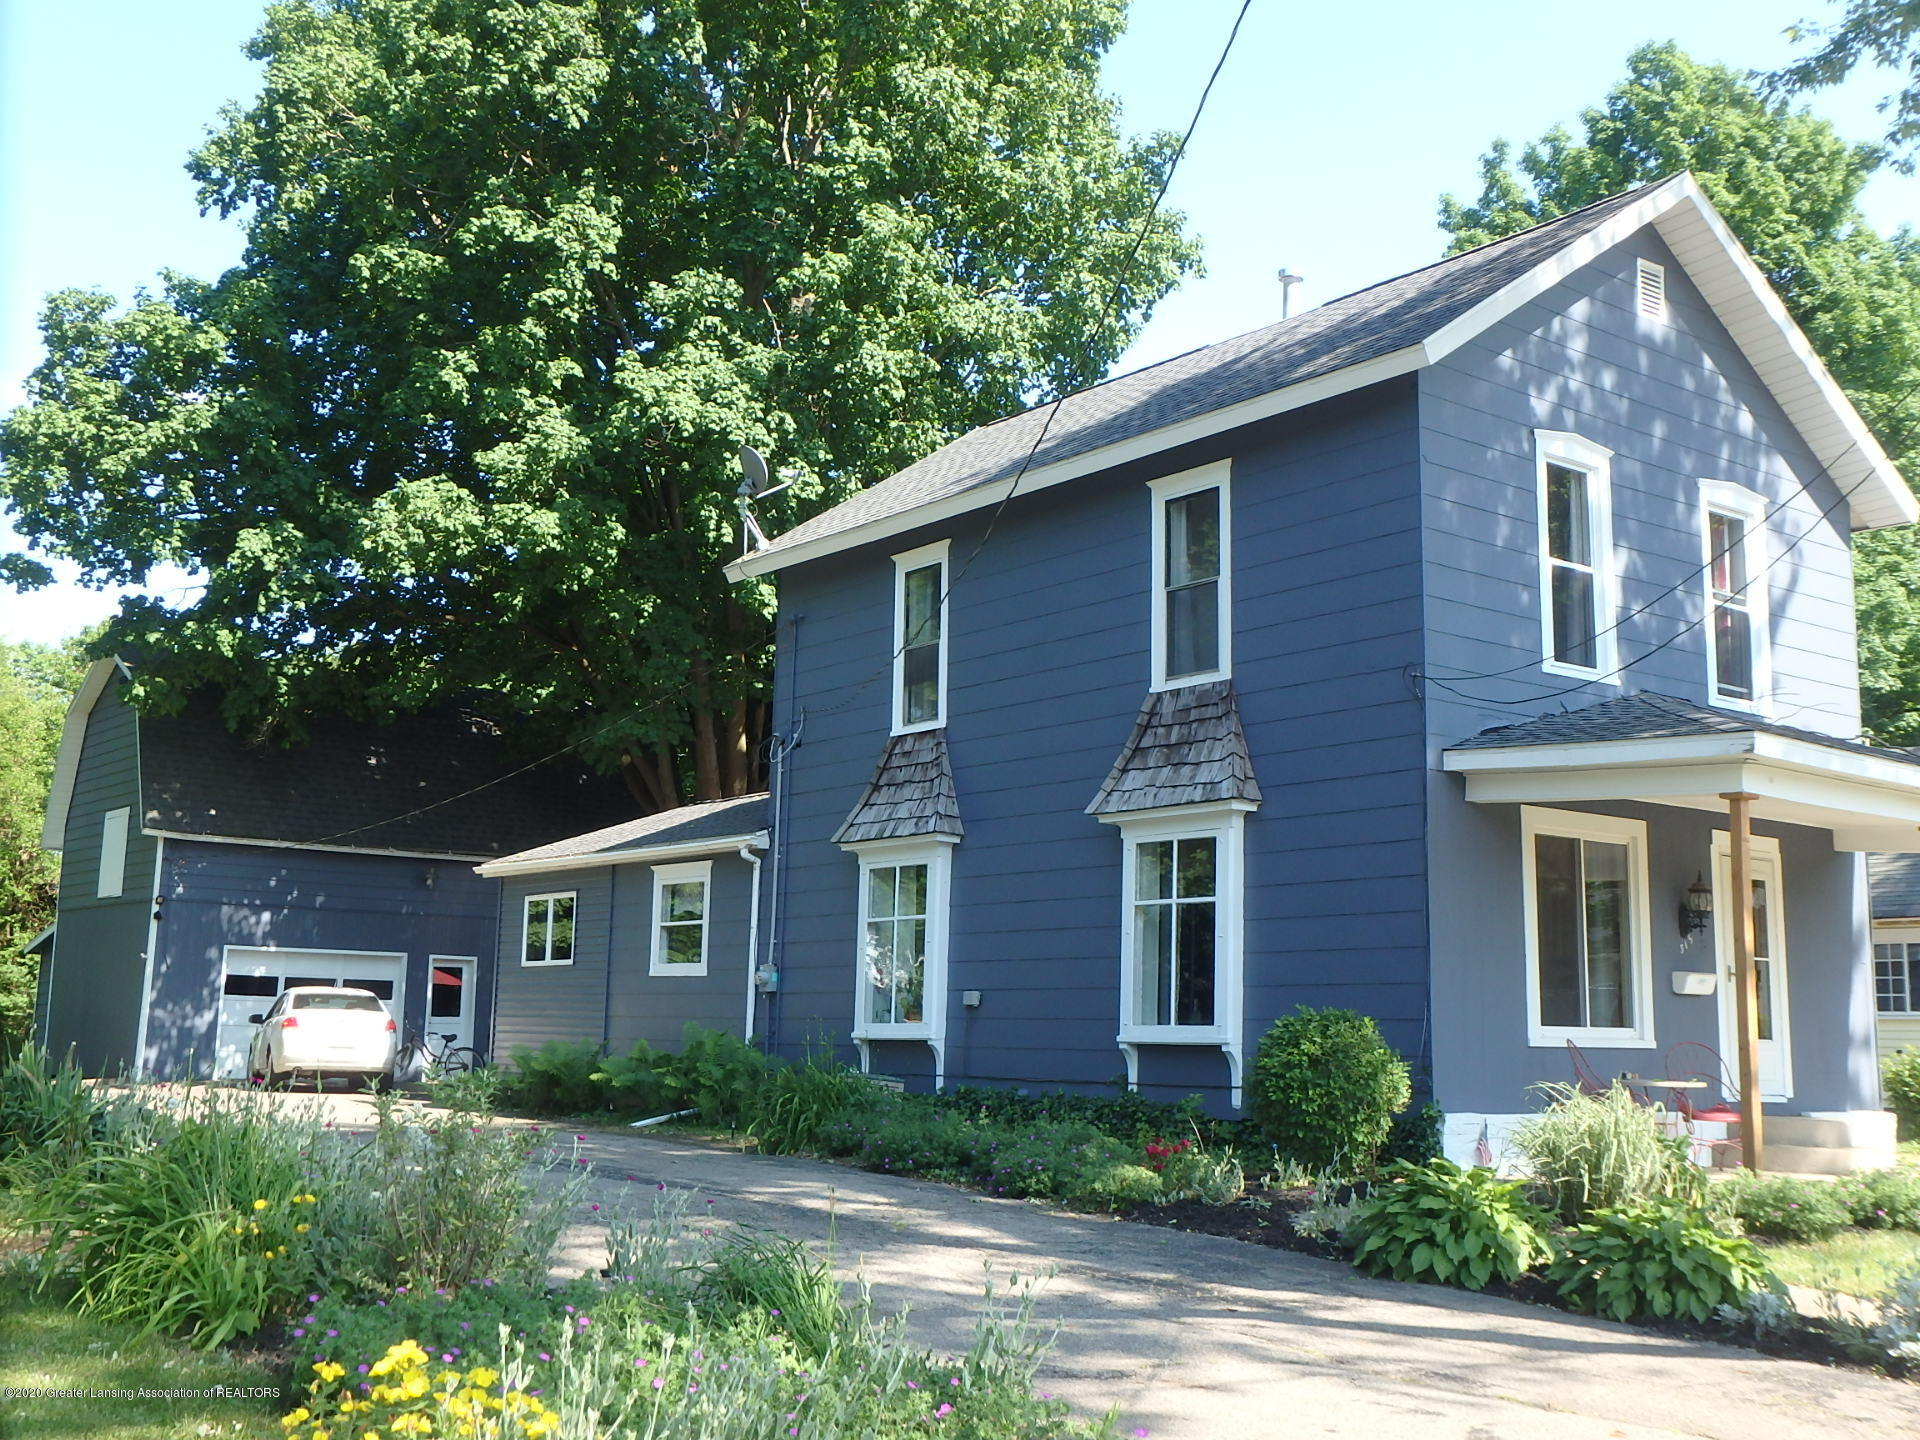 315 Pleasant St - 315 house and barn - 26